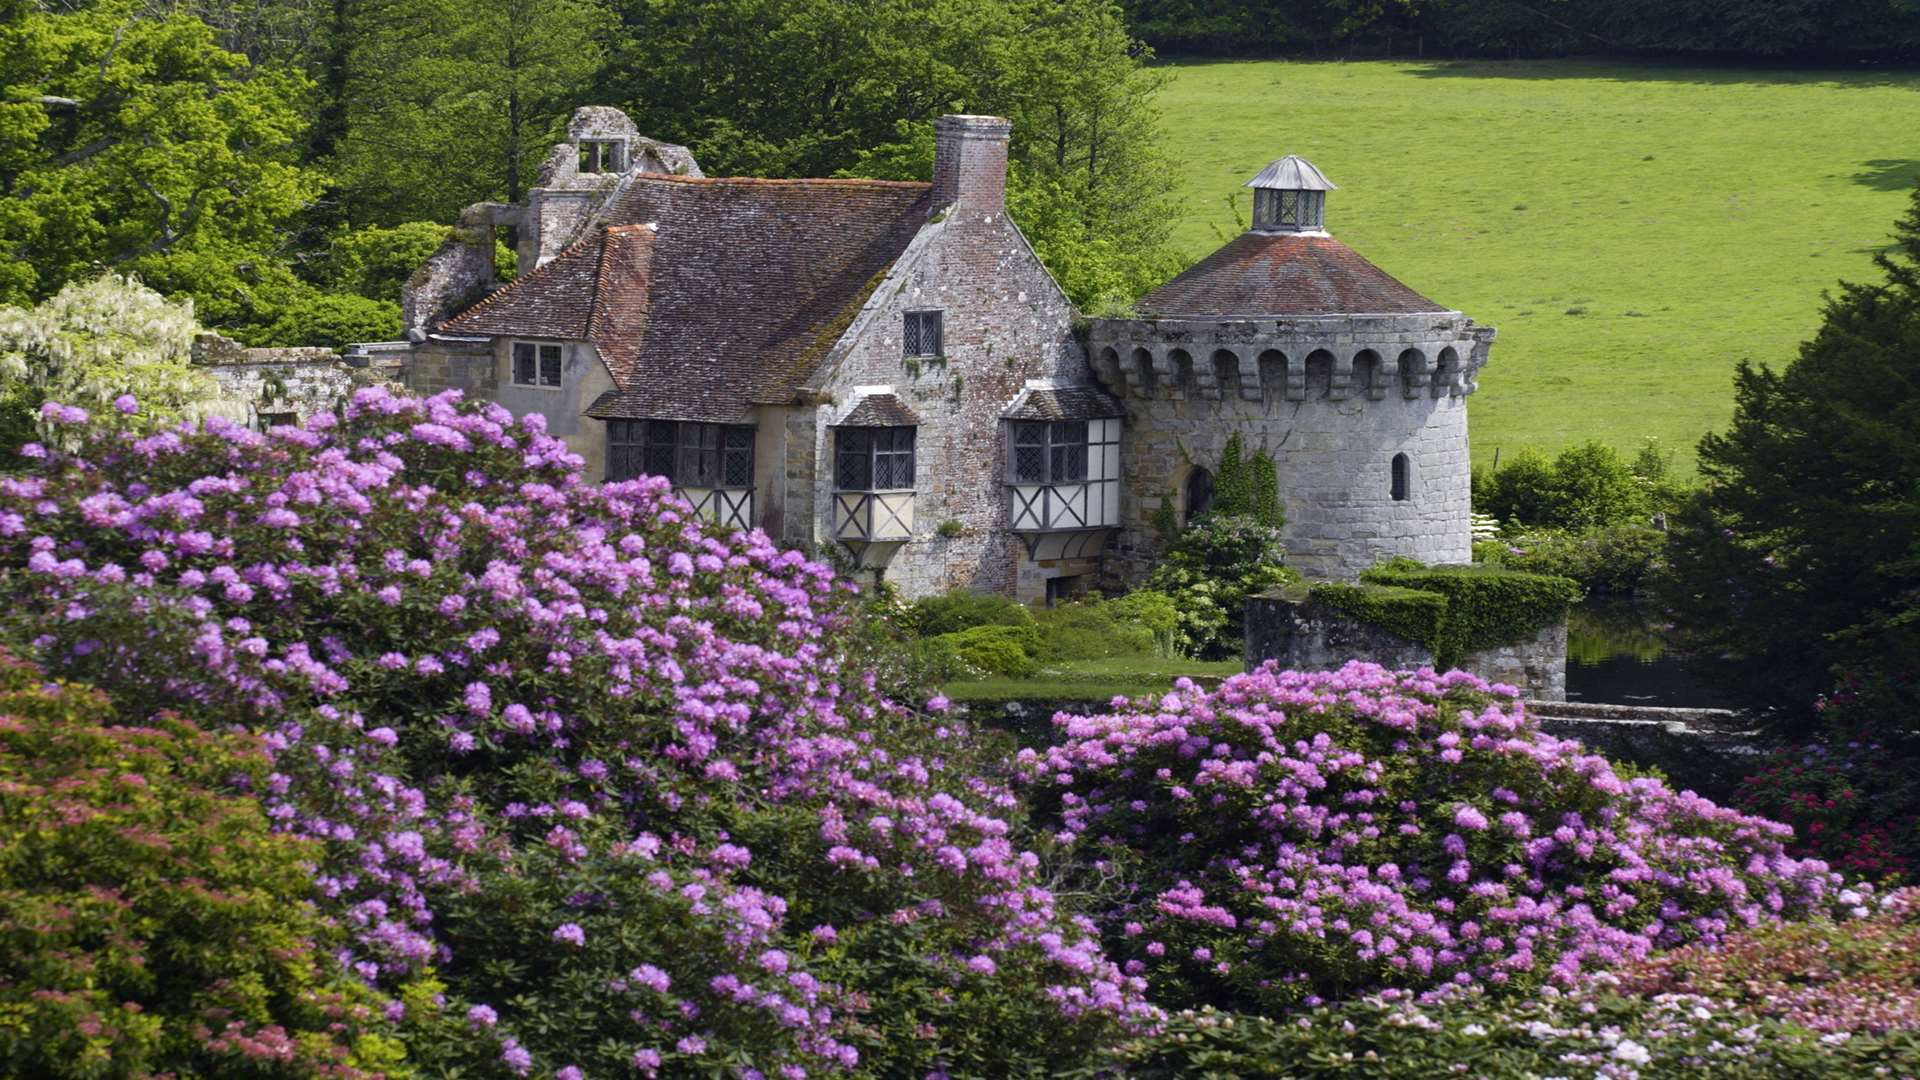 The National Trust's Scotney Castle